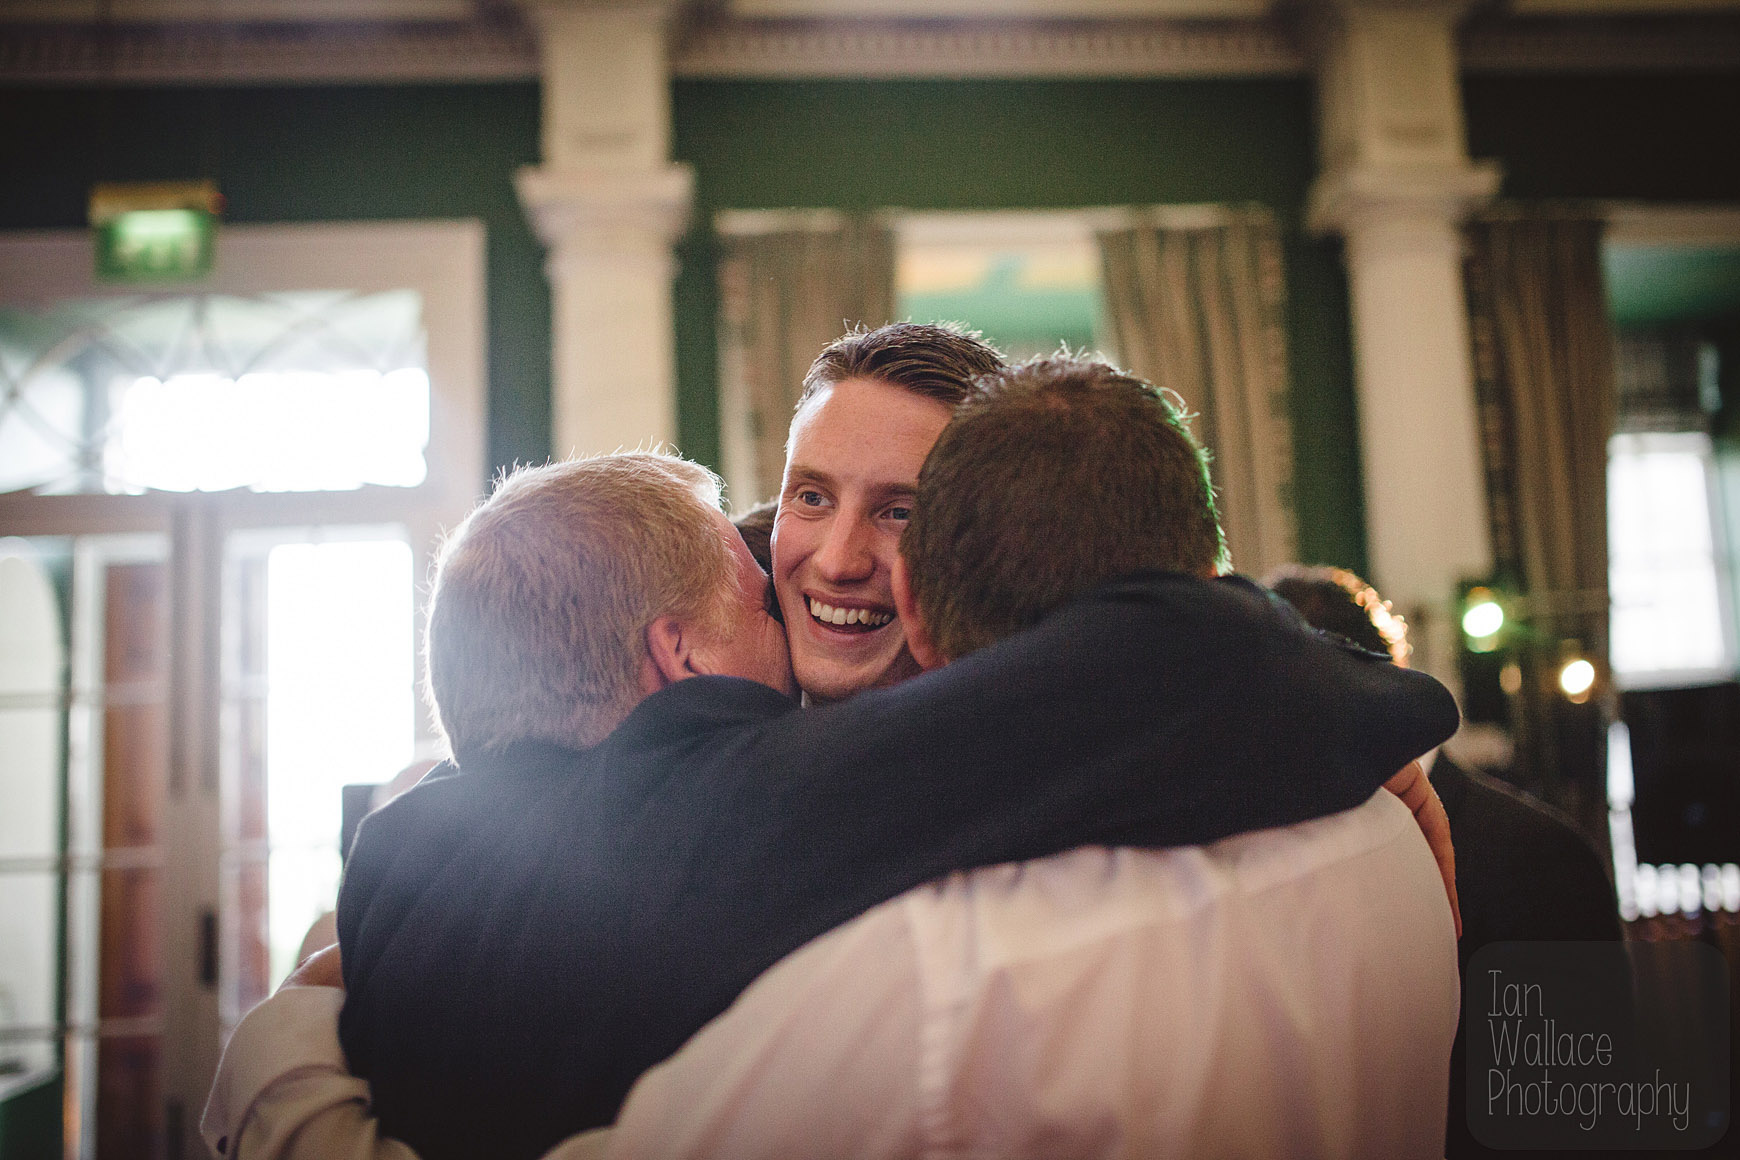 The groom getting mobbed by his friends after the first dance.